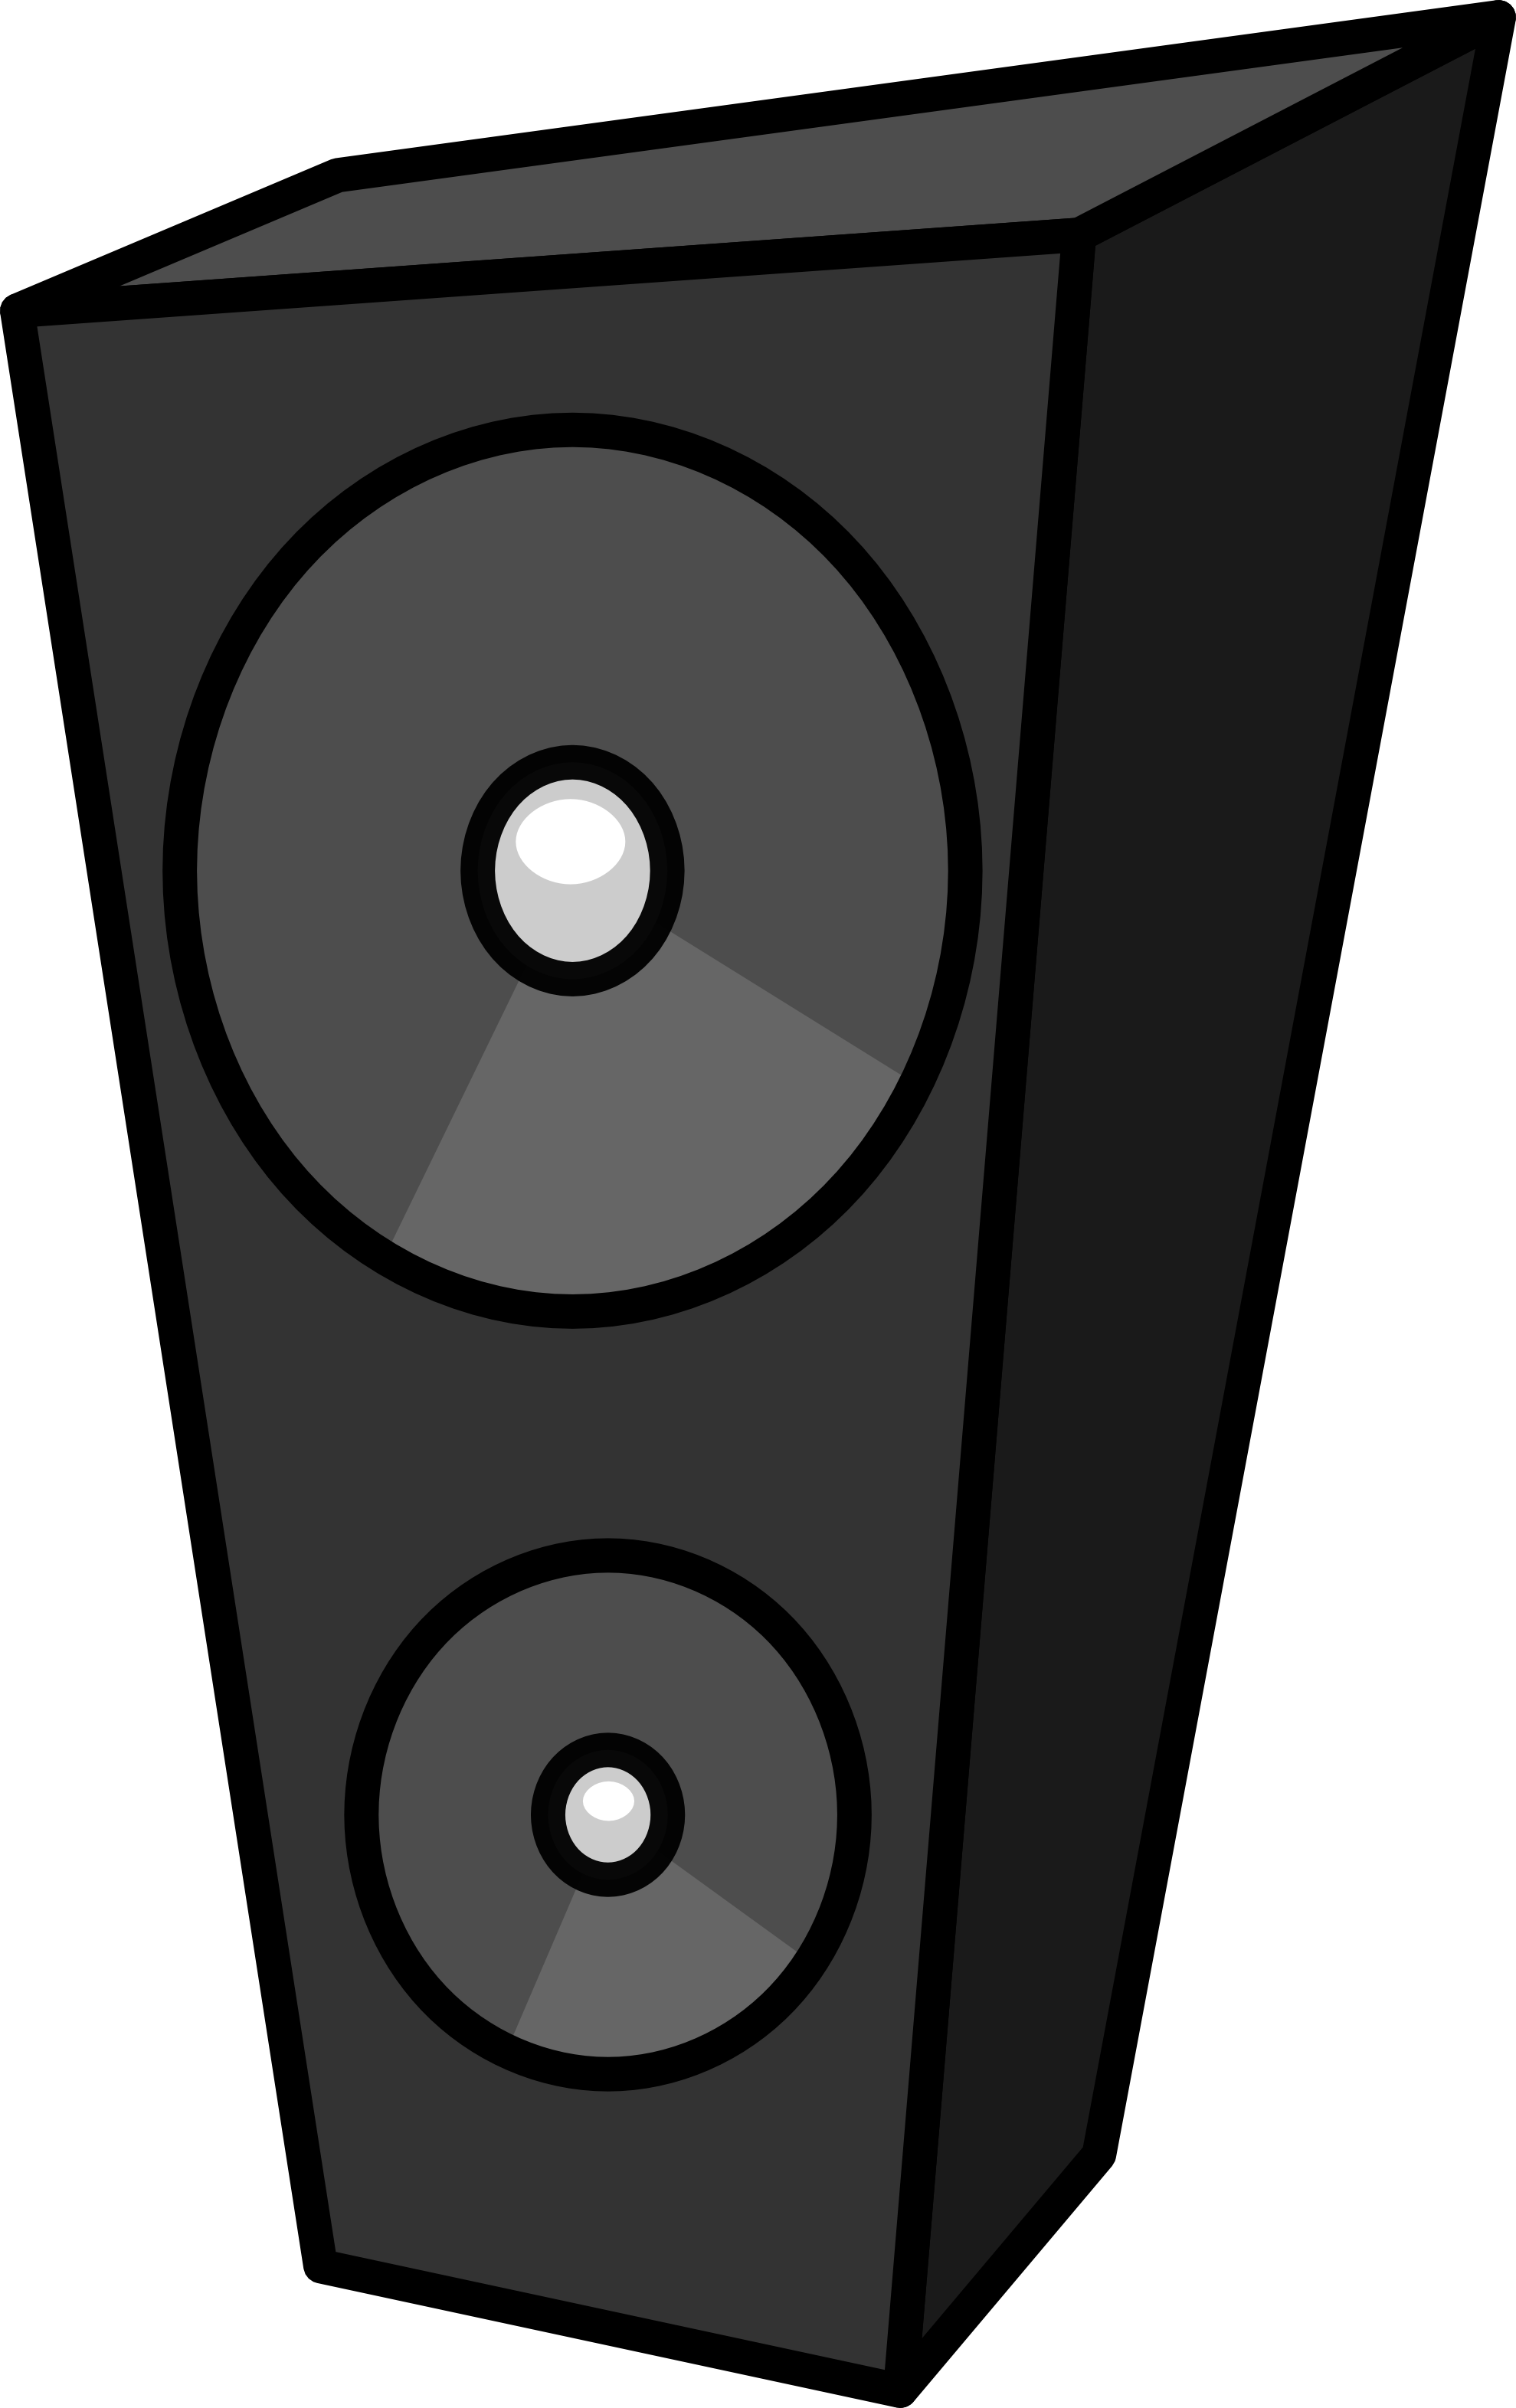 Car speakers clipart image library Speakers Clip Art | Clipart Panda - Free Clipart Images image library